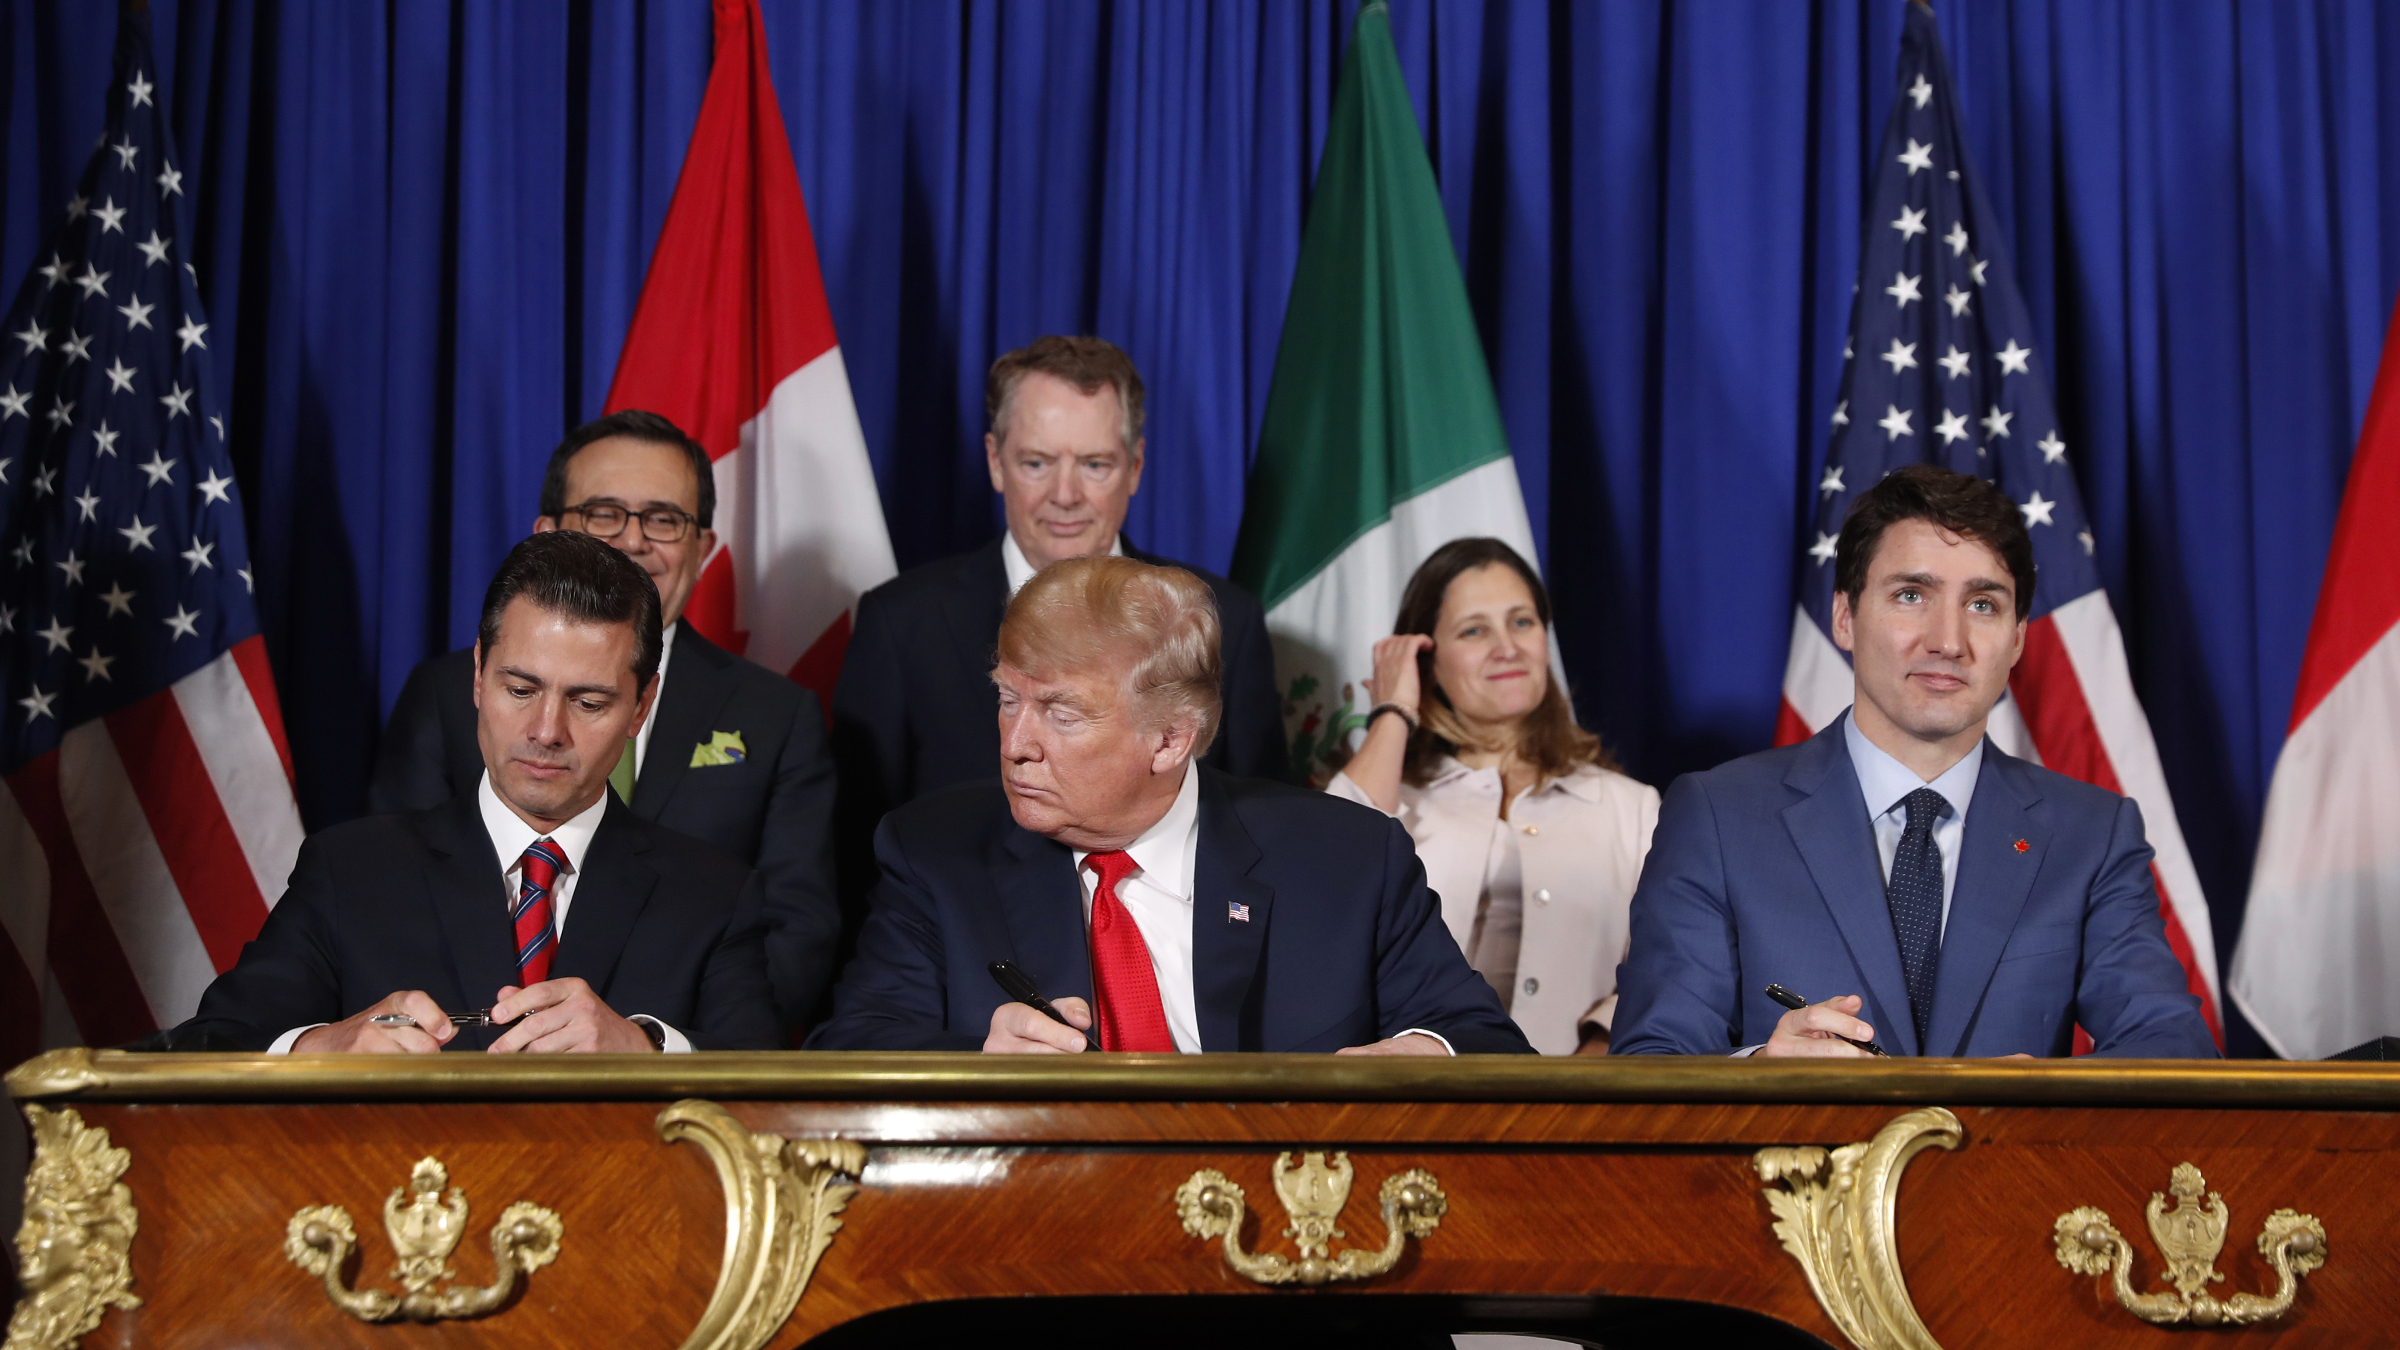 US President Donald Trump, Canada's Prime Minister Justin Trudeau, right, and Mexico's President Enrique Pena Nieto, left, participate in the USMCA signing ceremony in Buenos Aires